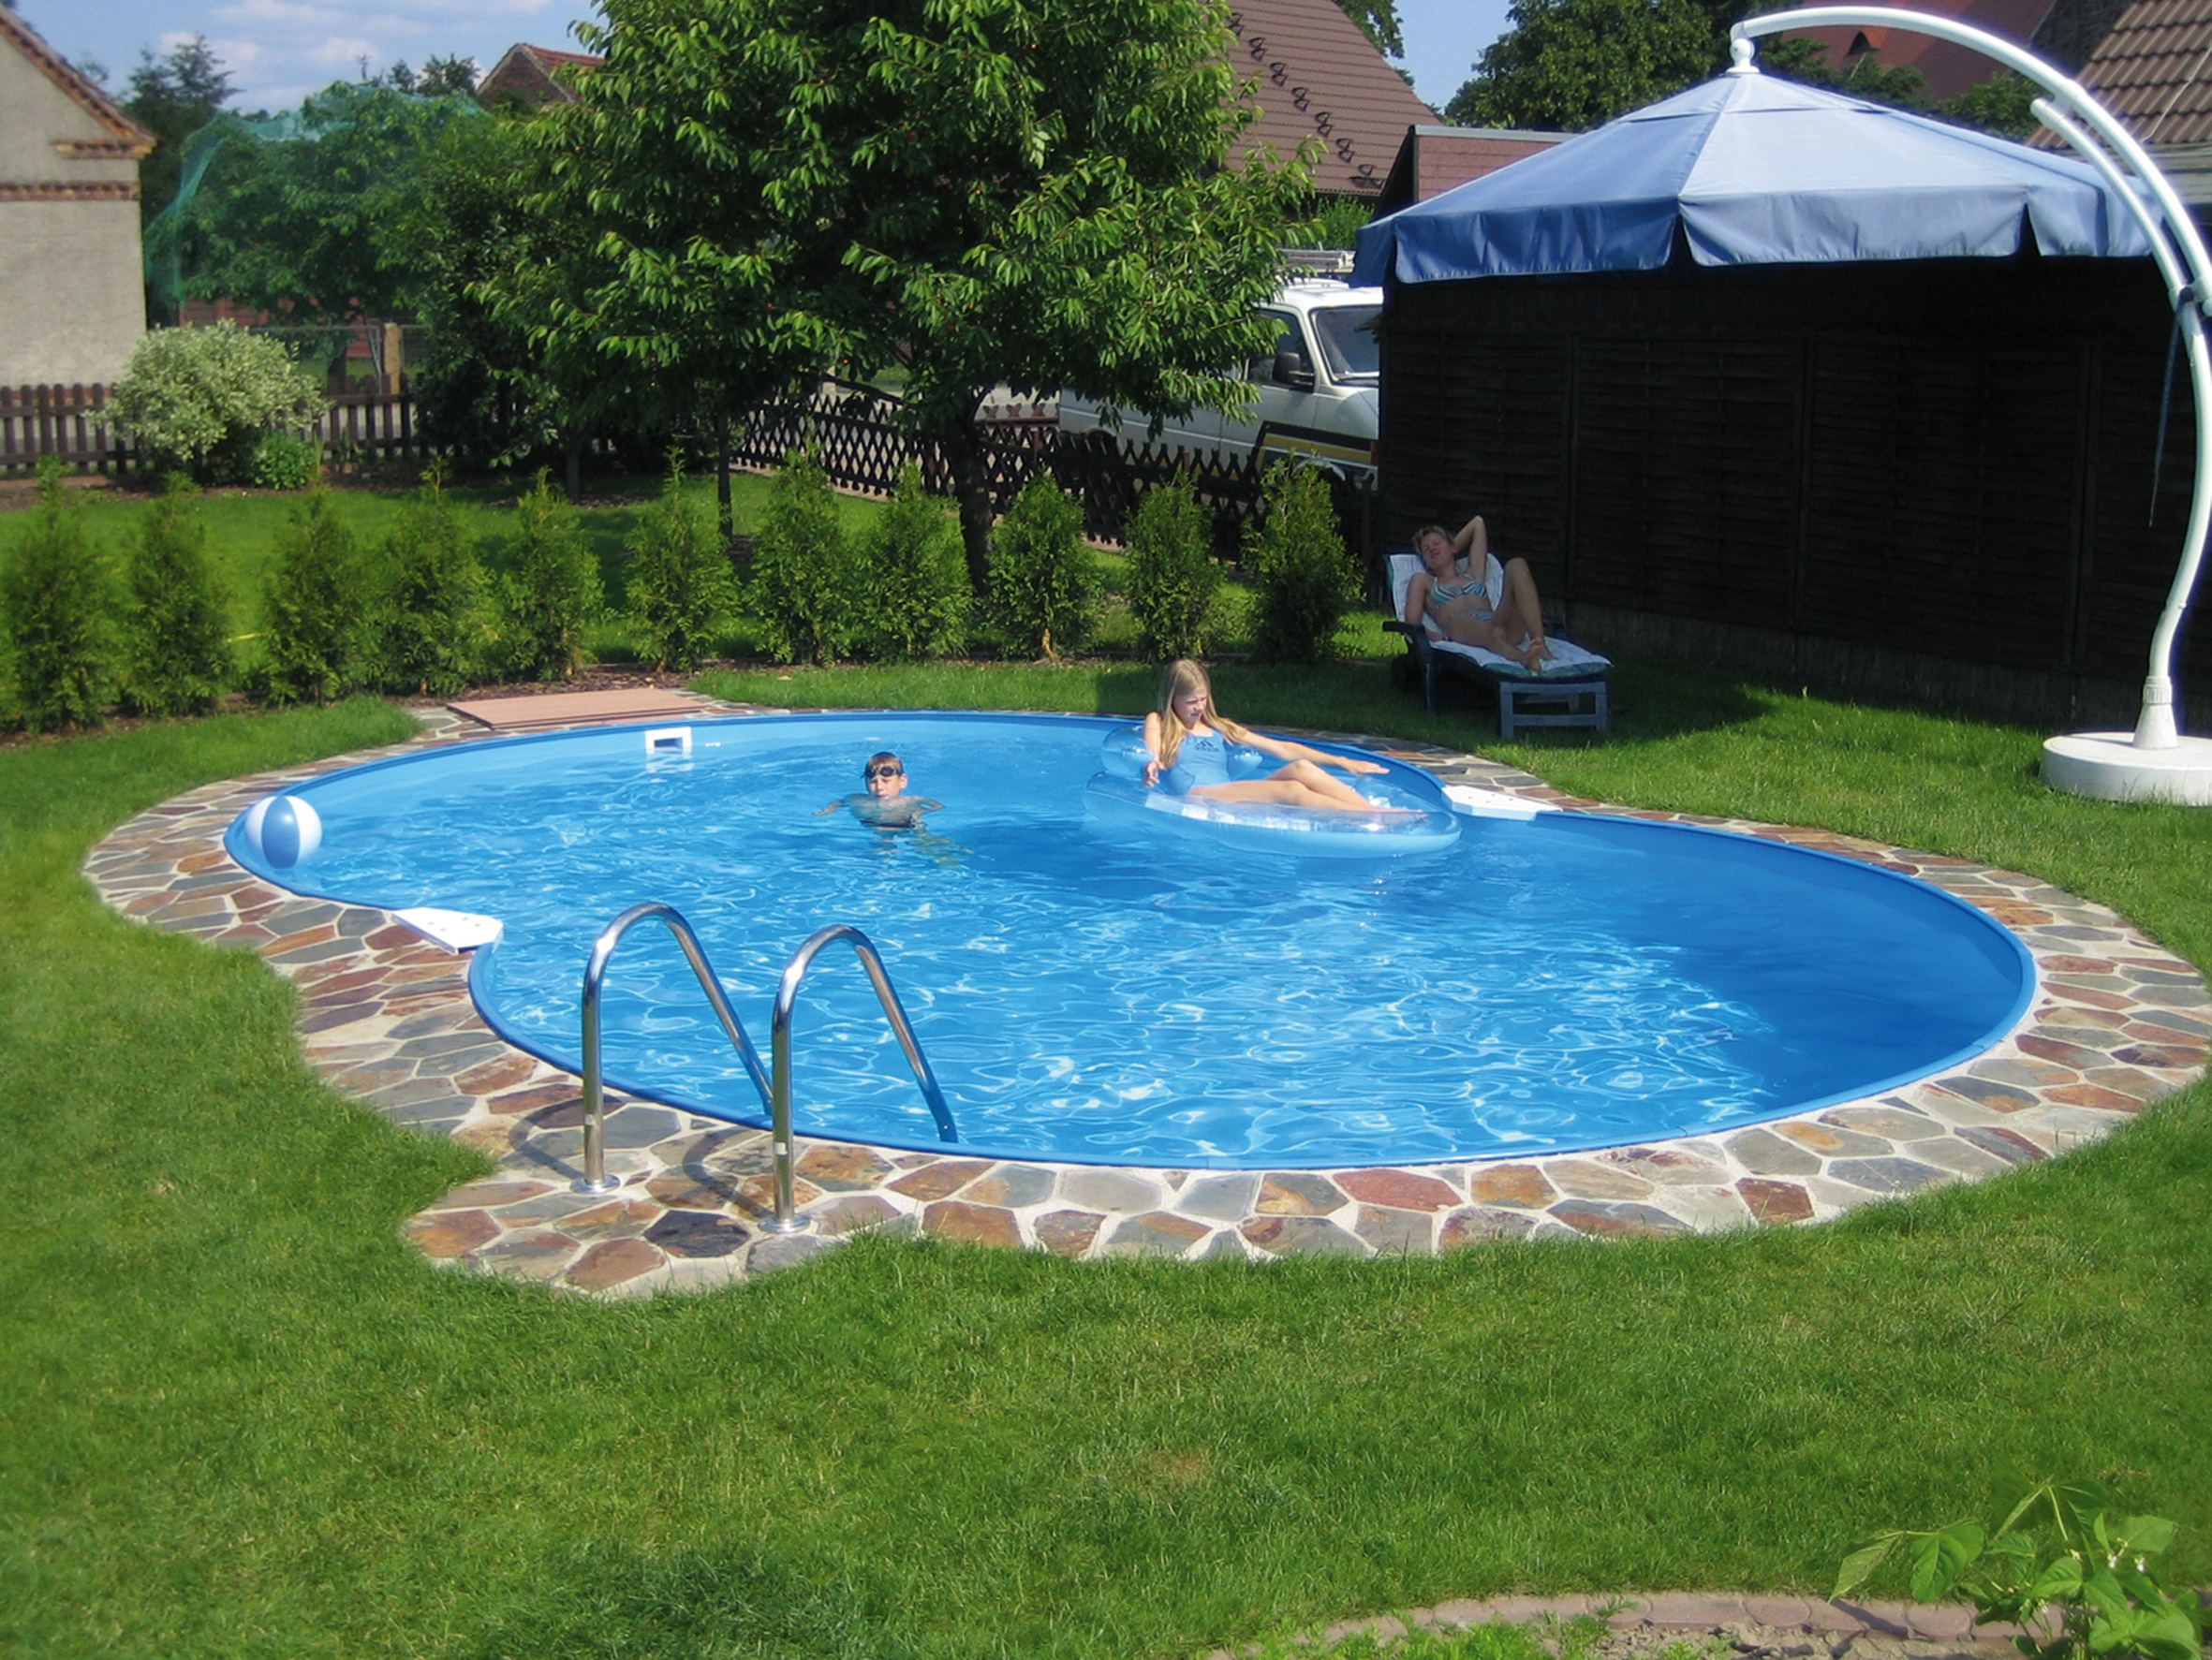 High Quality Backyard Landscaping Ideas Swimming Pool Design